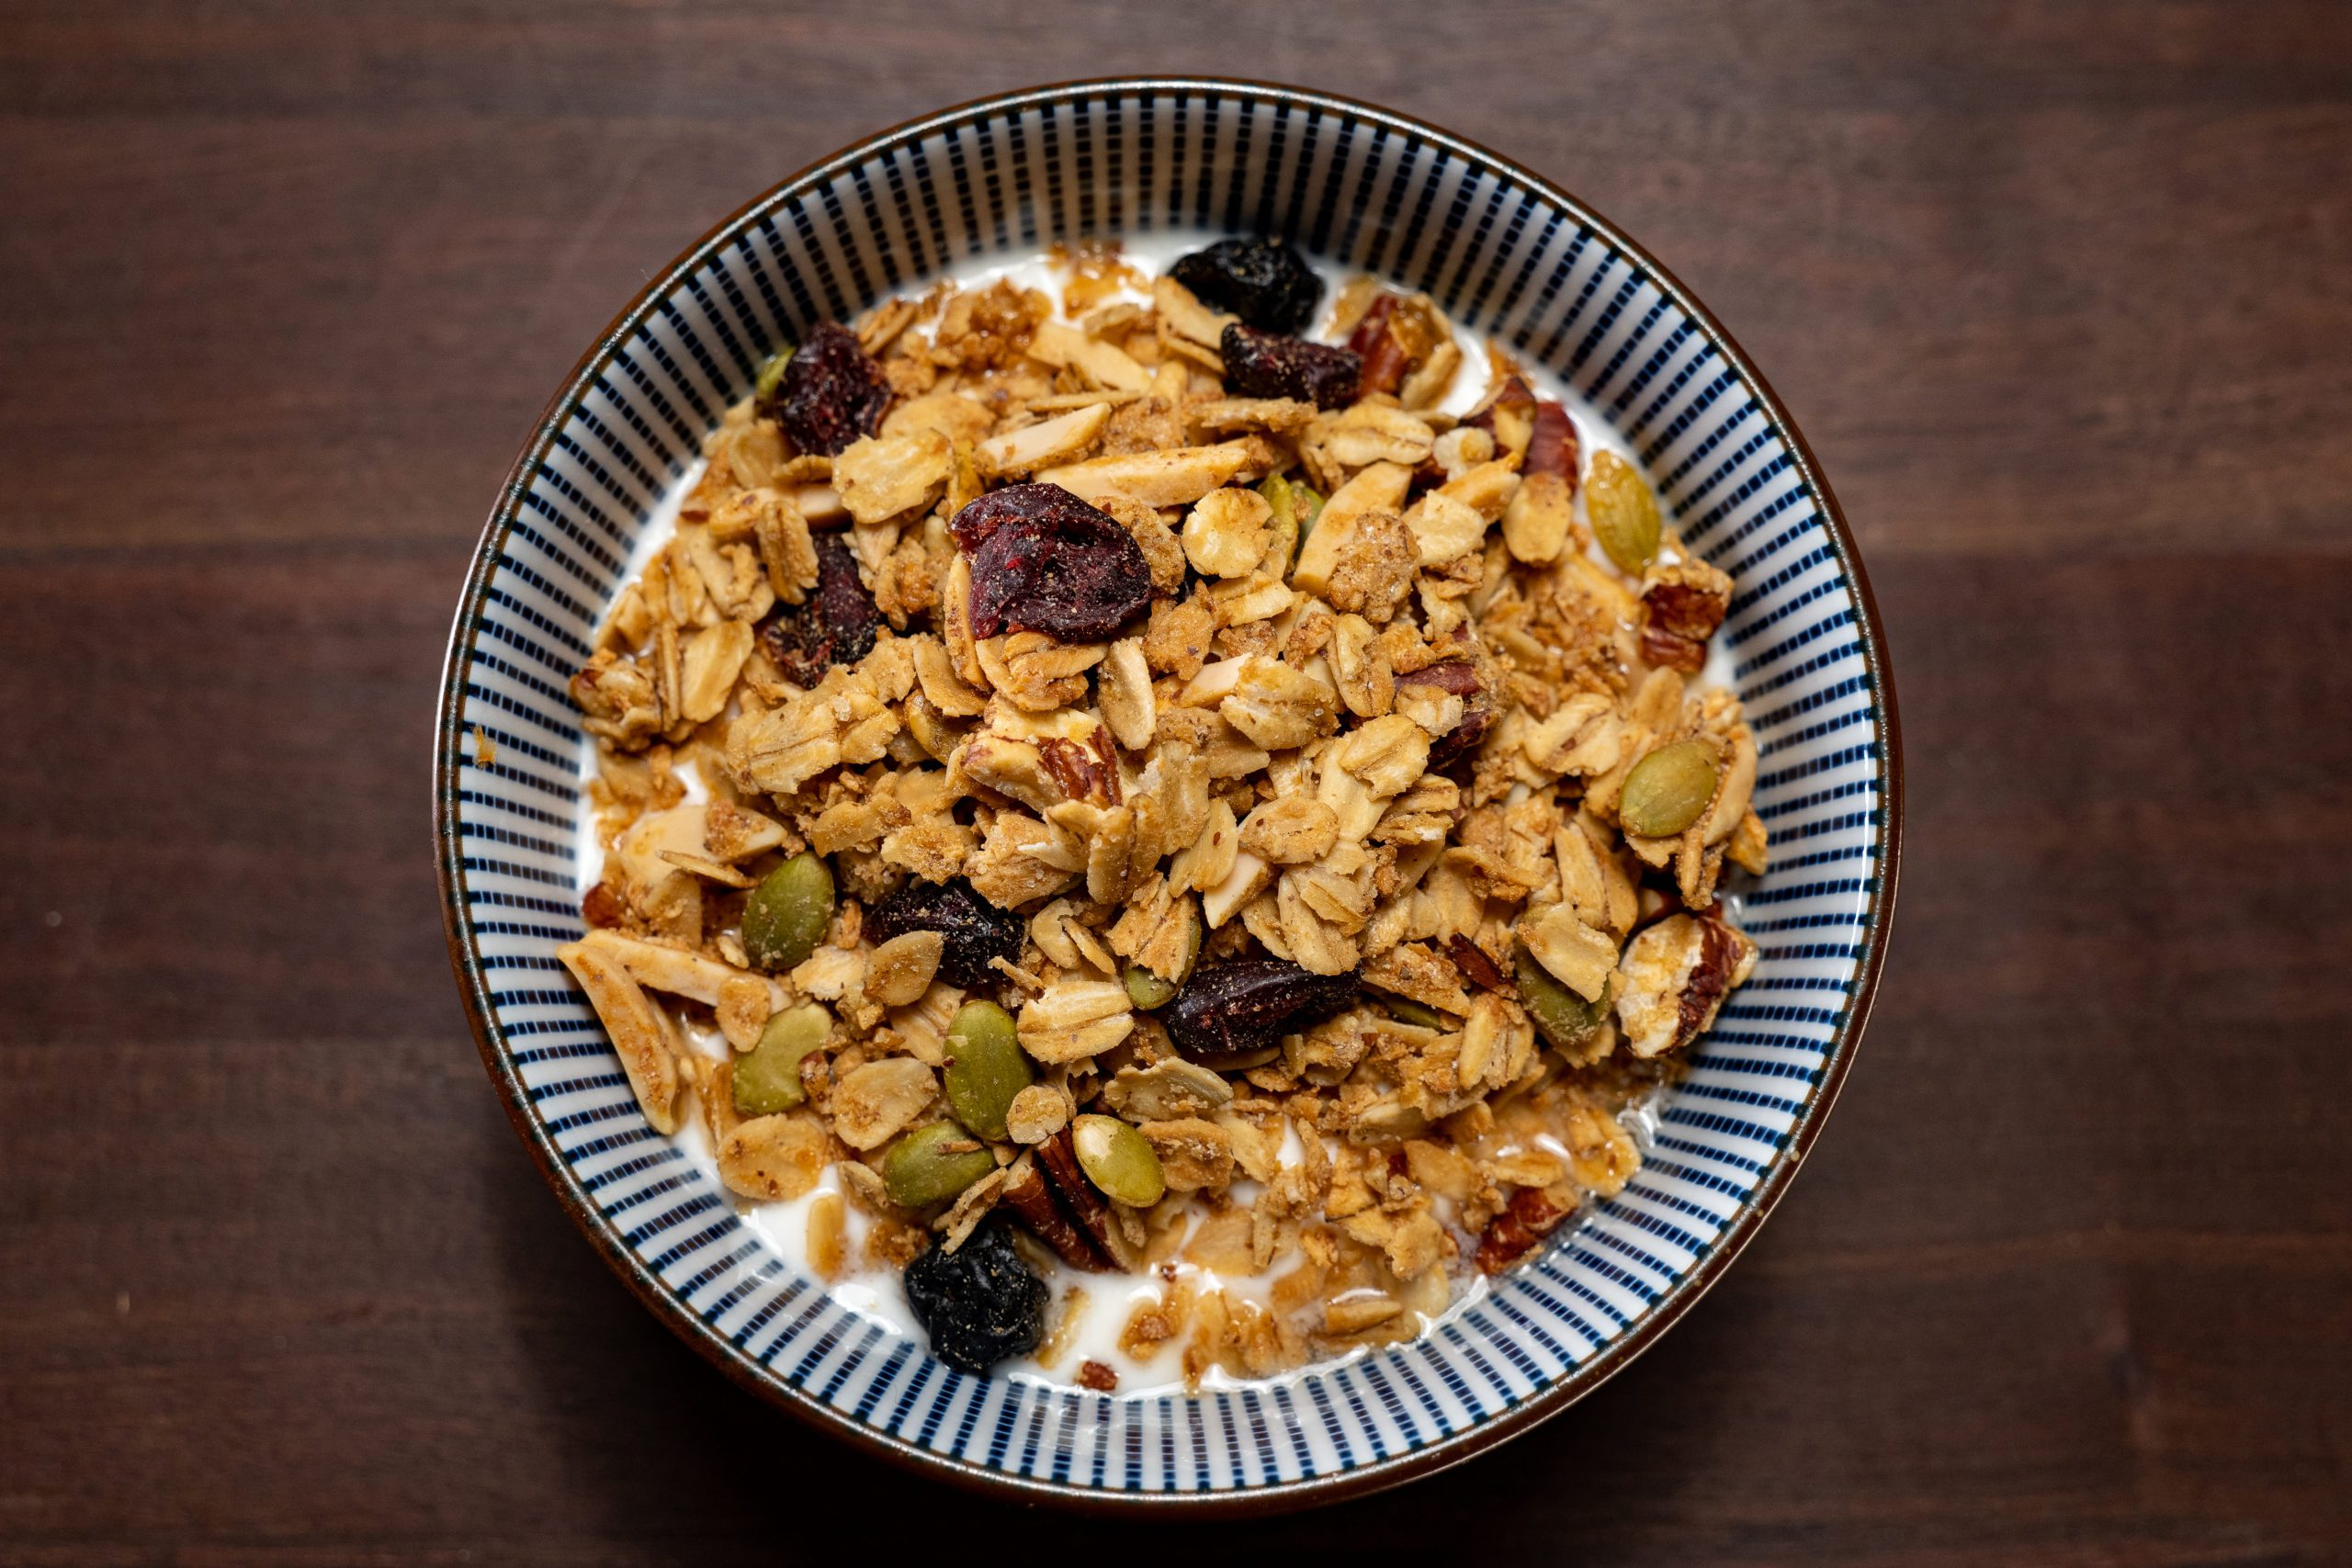 Alton Brown's granola in a striped bowl with milk